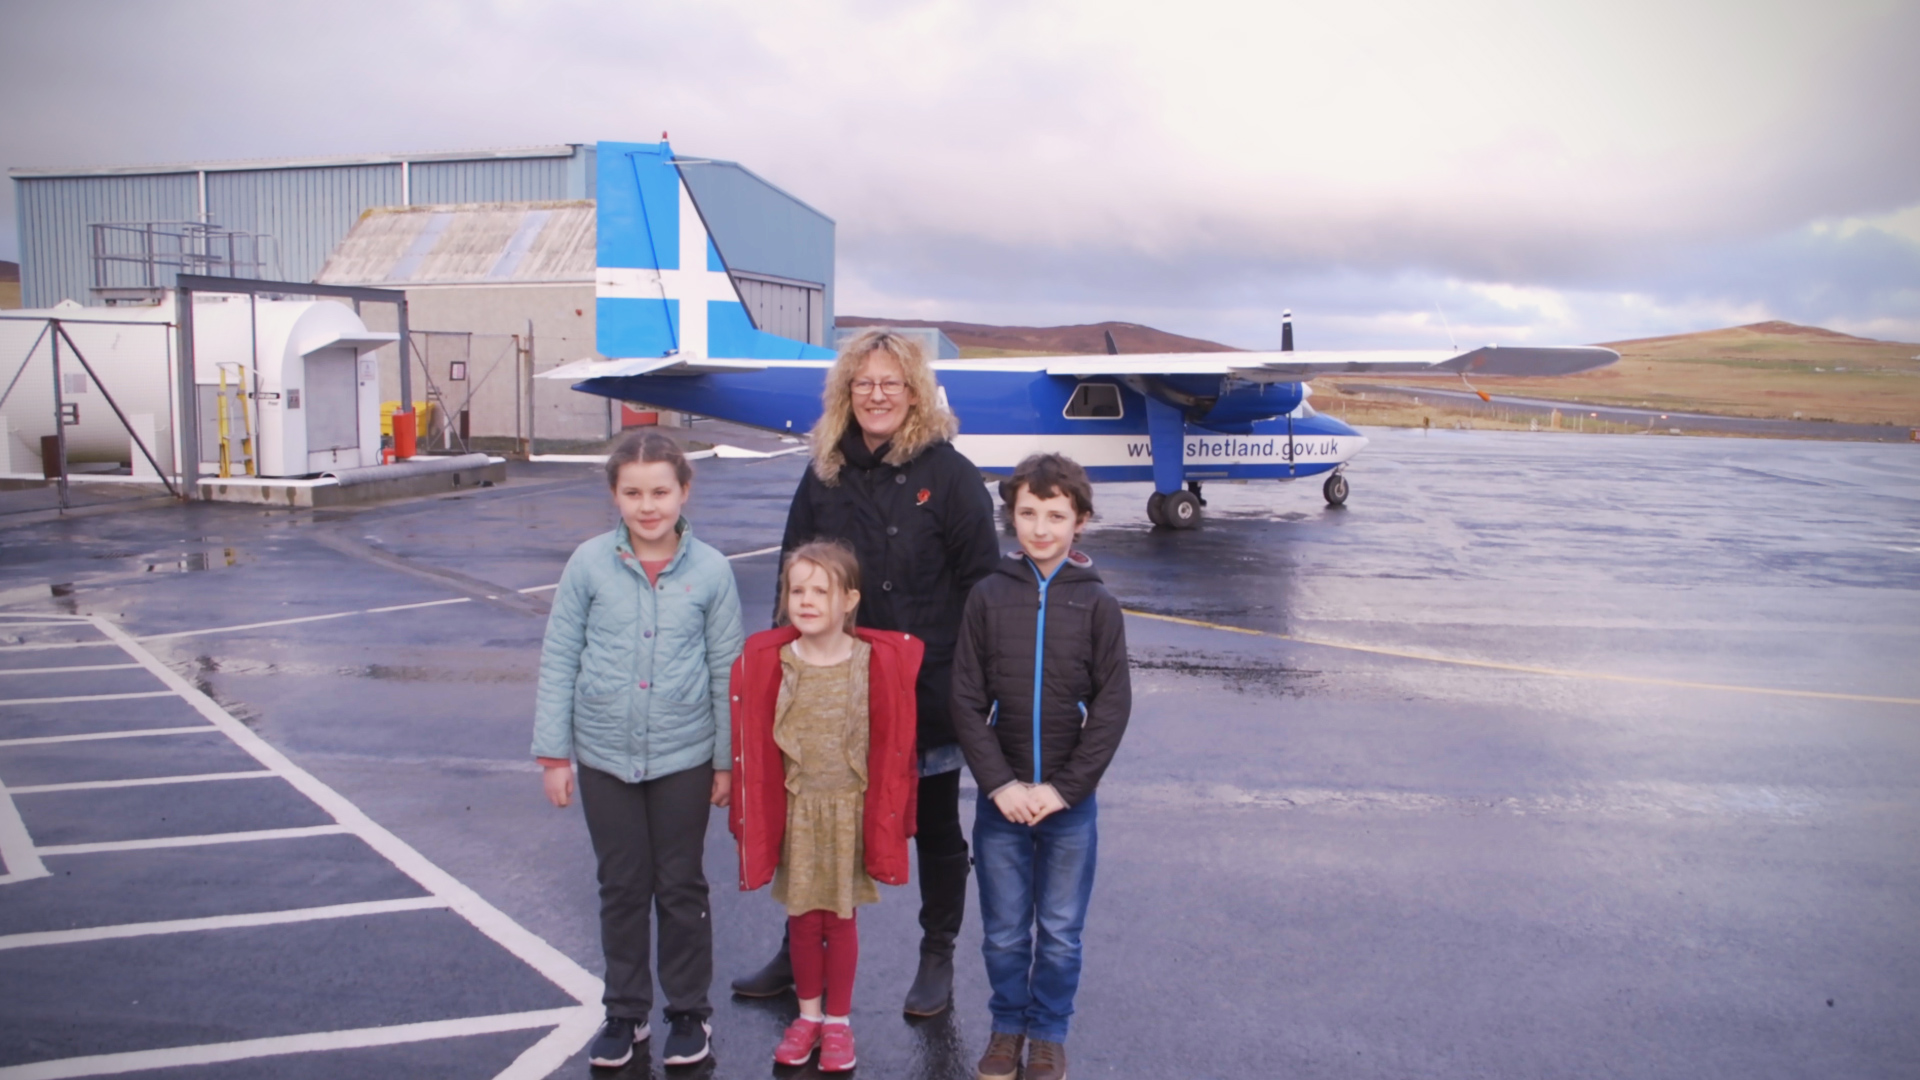 Fair Isle school children Grace Parnaby, 9 Freyja Parnaby, 6, and Lewis Wright-Stanners, 9 with head teacher Ruth Stout. Public Sector PR